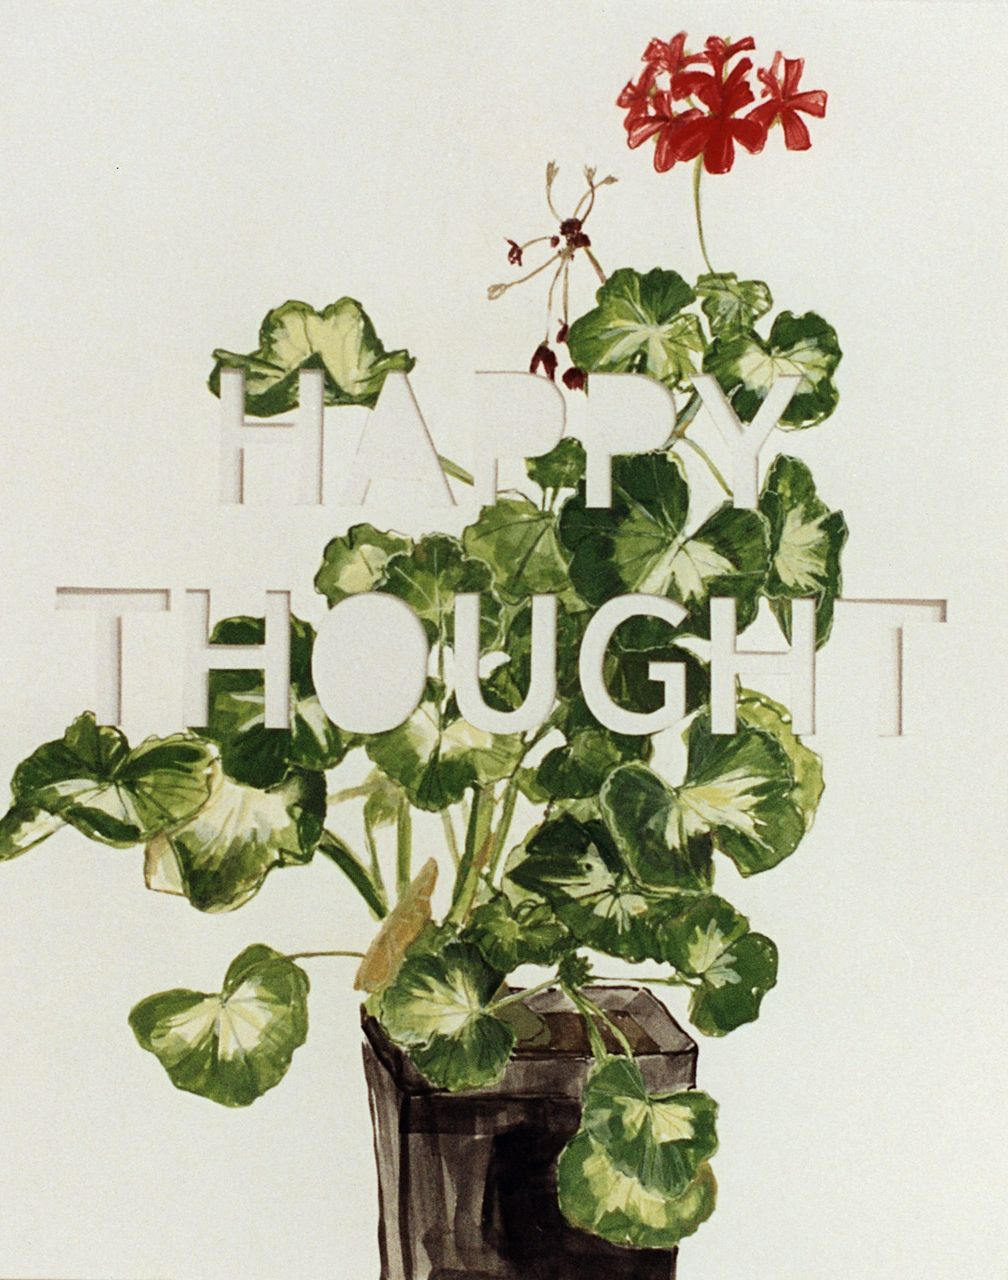 Happy Thought, 2000, Gouache on paper